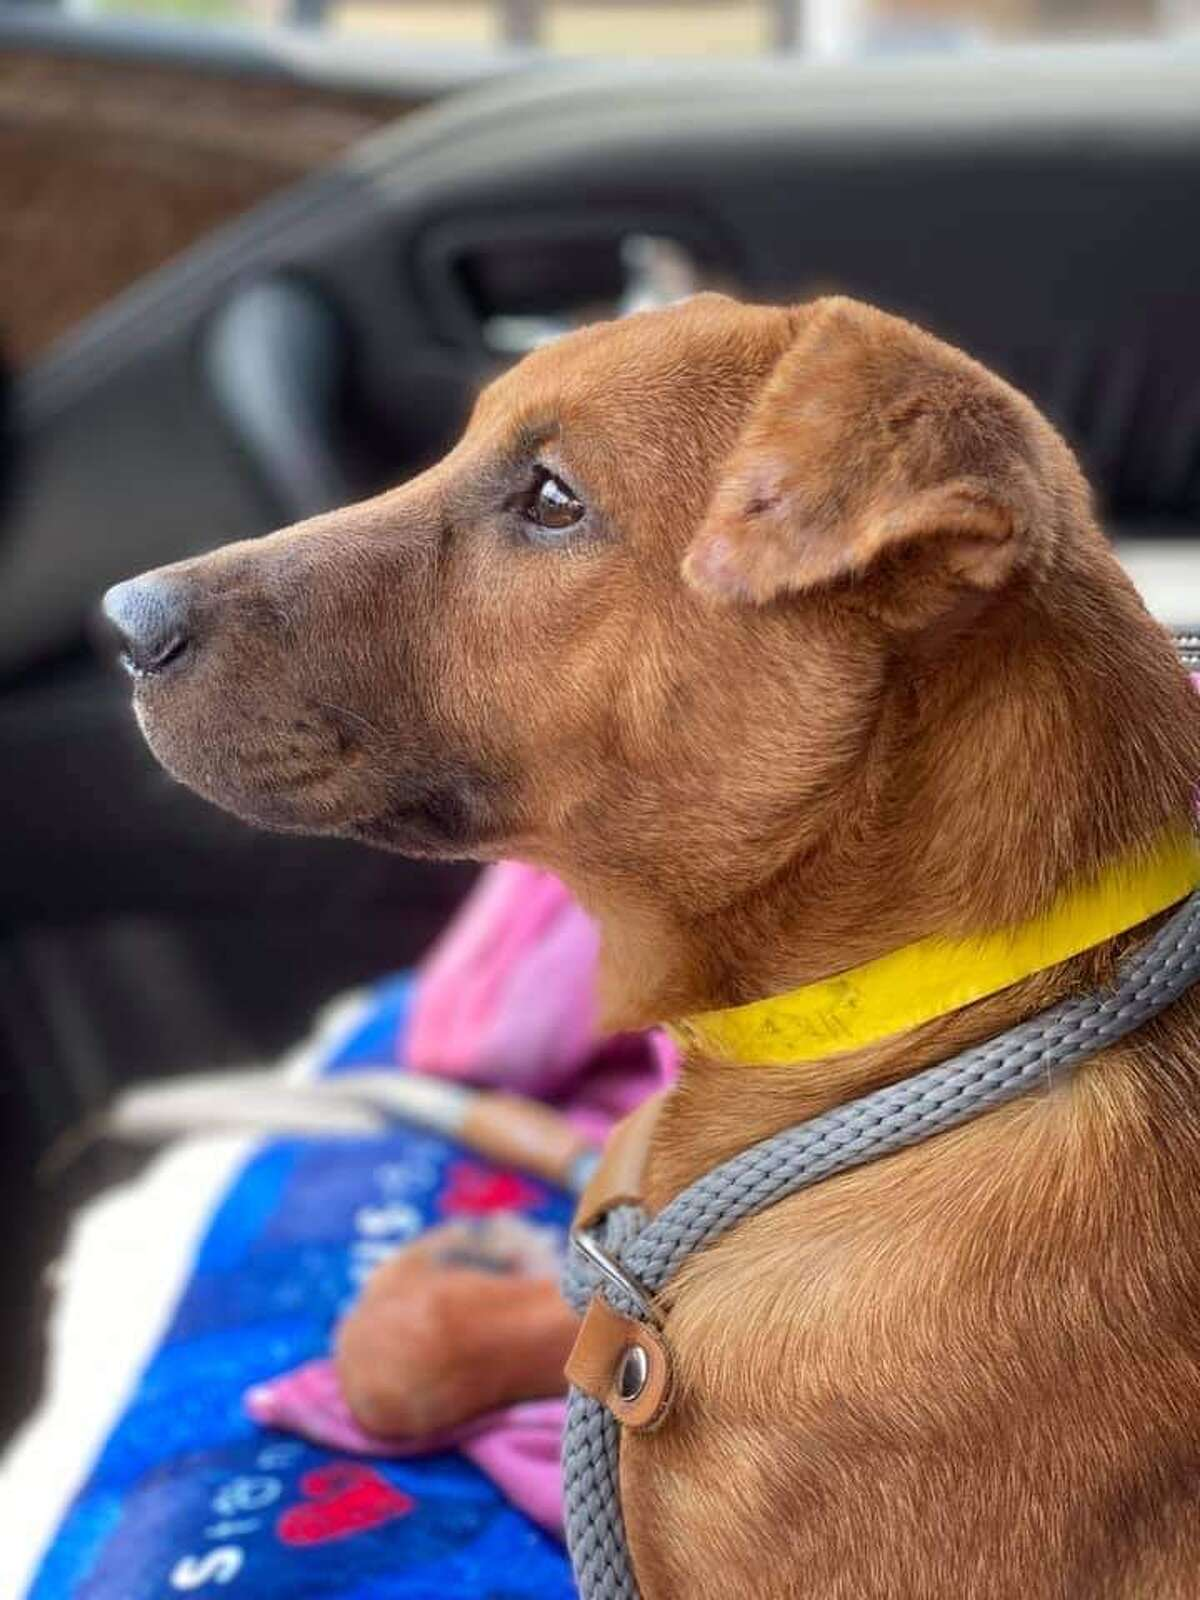 Hurricane Laura will displace hundreds of animals across Houston and Galveston over the next couple of days. Rescued Pets Movement is preparing to save as many of them as possible, but they must #ClearTheShelter in their facility first.